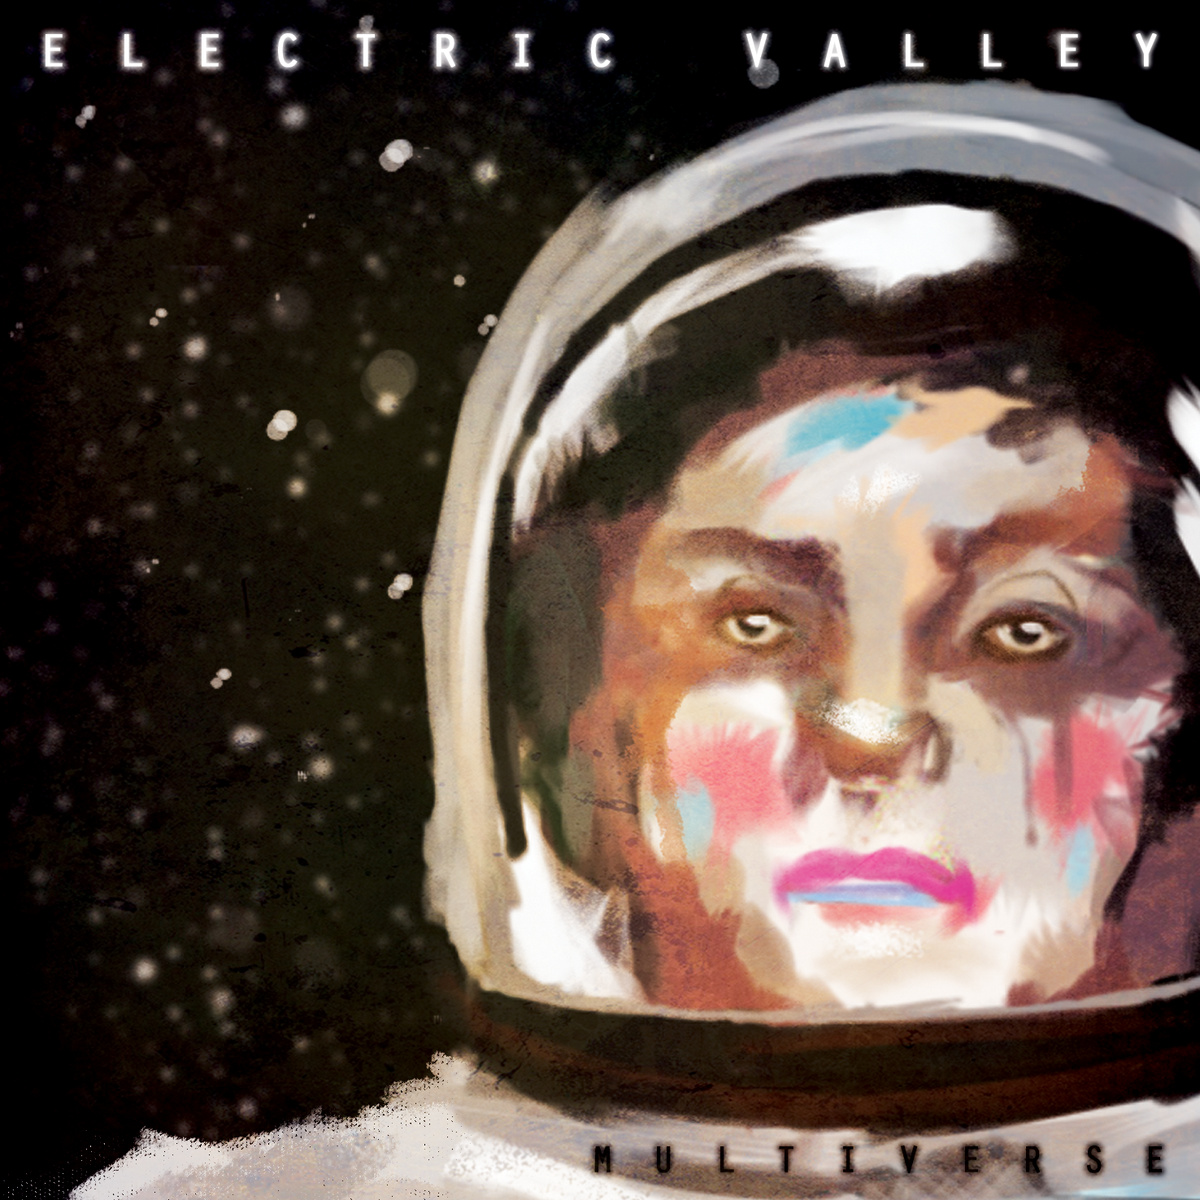 Electric Valley - Multiverse